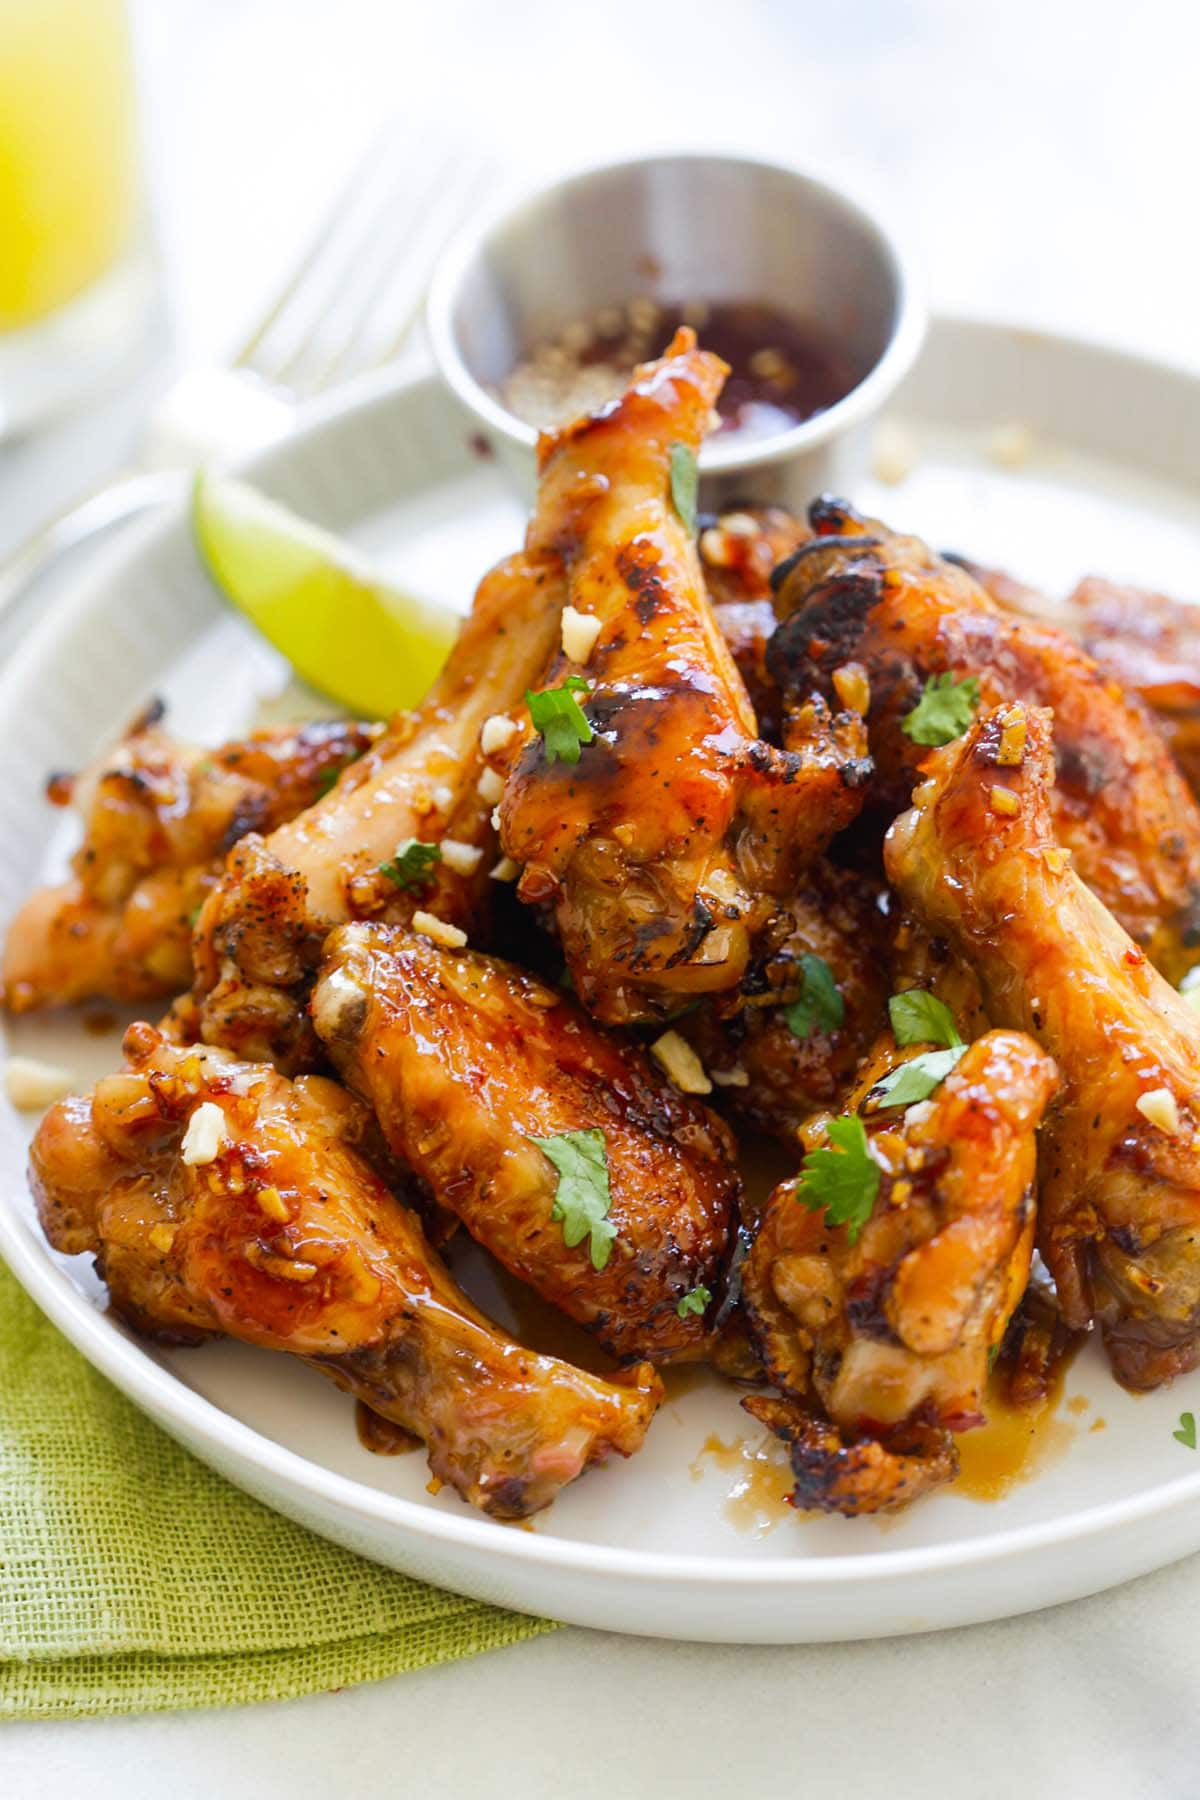 Easy homemade chicken wings dipped into chicken wings dipping sauce.